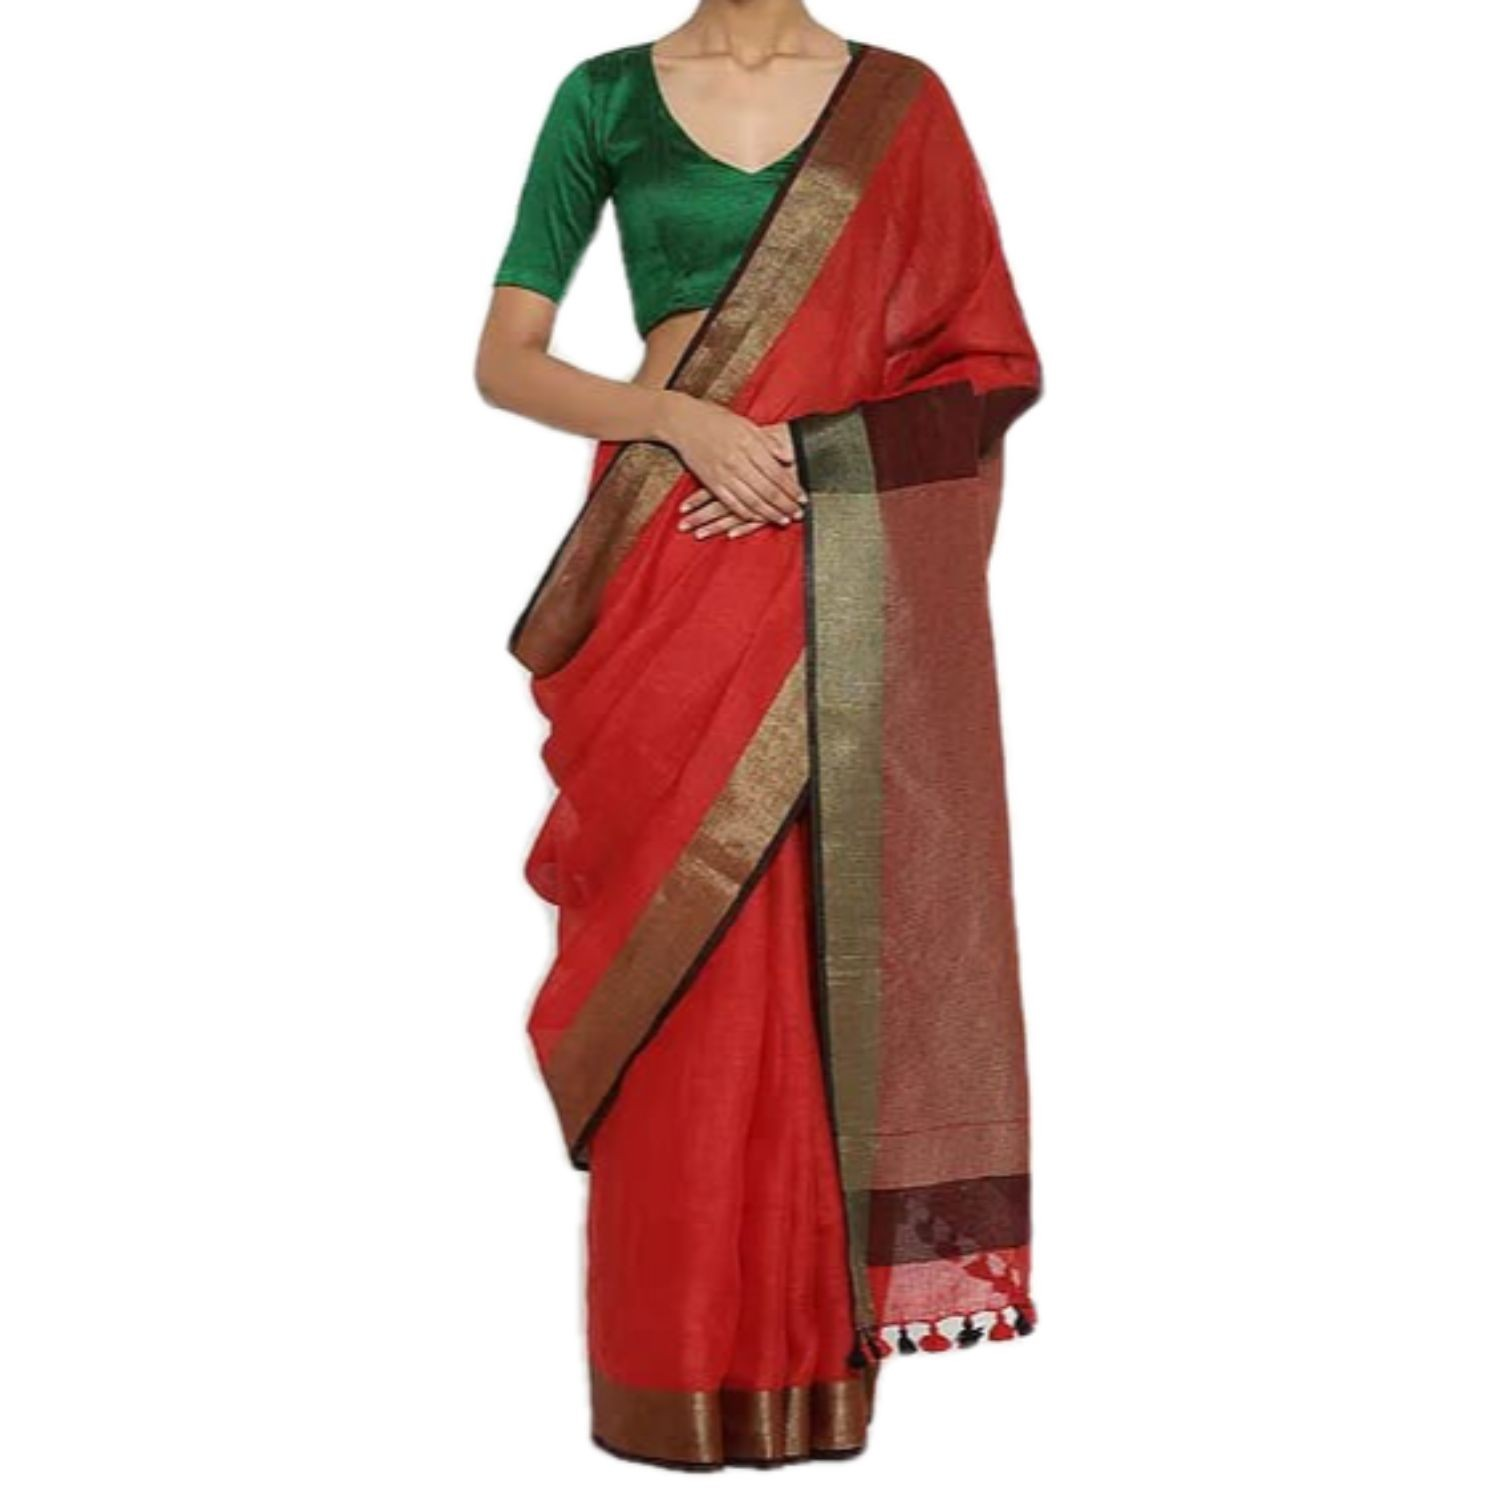 Exclusive Ethnic Indian Women's Bhagalpuri Handloom Cotton linen saree with Gold border with beautifully decorate soft tussels By Weaver'S Of Bhagalpur Bihar